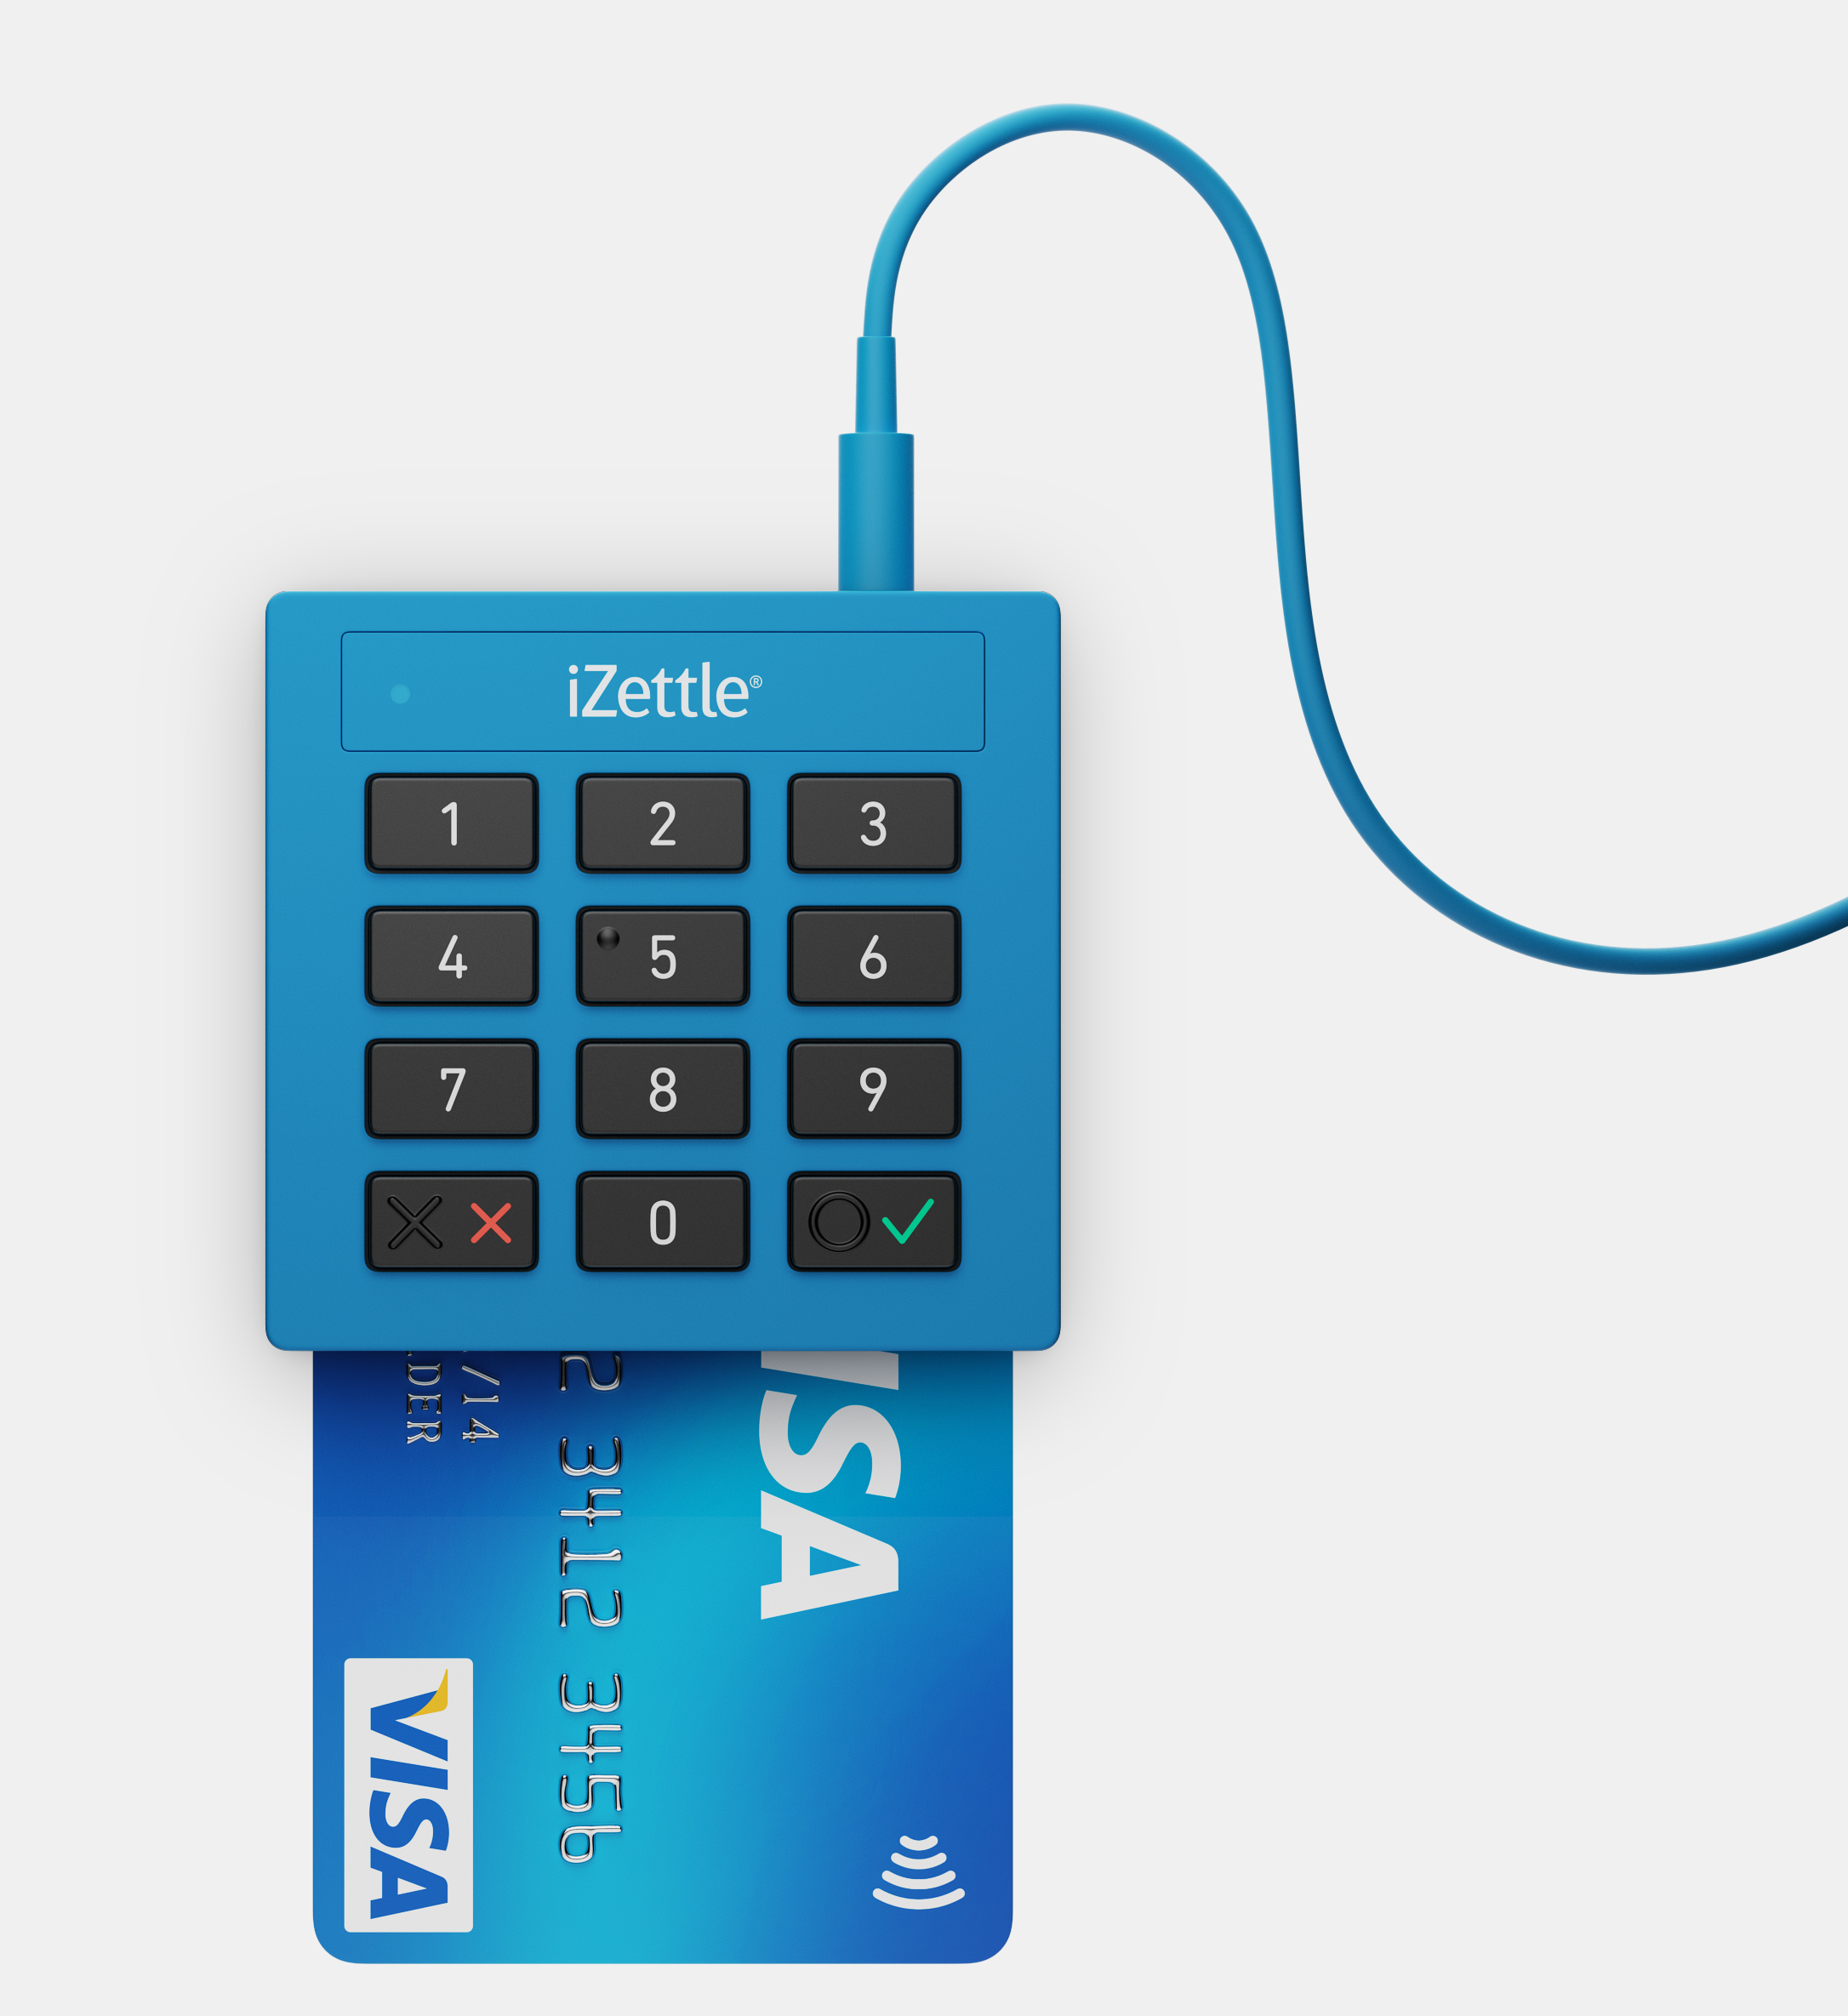 Izettle Launches Its First Free Entrylevel Chip & Pin. Temporary Phone Service Hollard Car Insurance. Uploading Videos To You Tube. Working Class Acupuncture Cully. Nordstrom Visa Credit Card Hadoop Get Started. Medical Alert Systems Consumer Reports. Free Standing Bridge Crane Wallet App Review. Gundersen Lutheran Health Plan. Nm Gas Company Phone Number Where To Invest